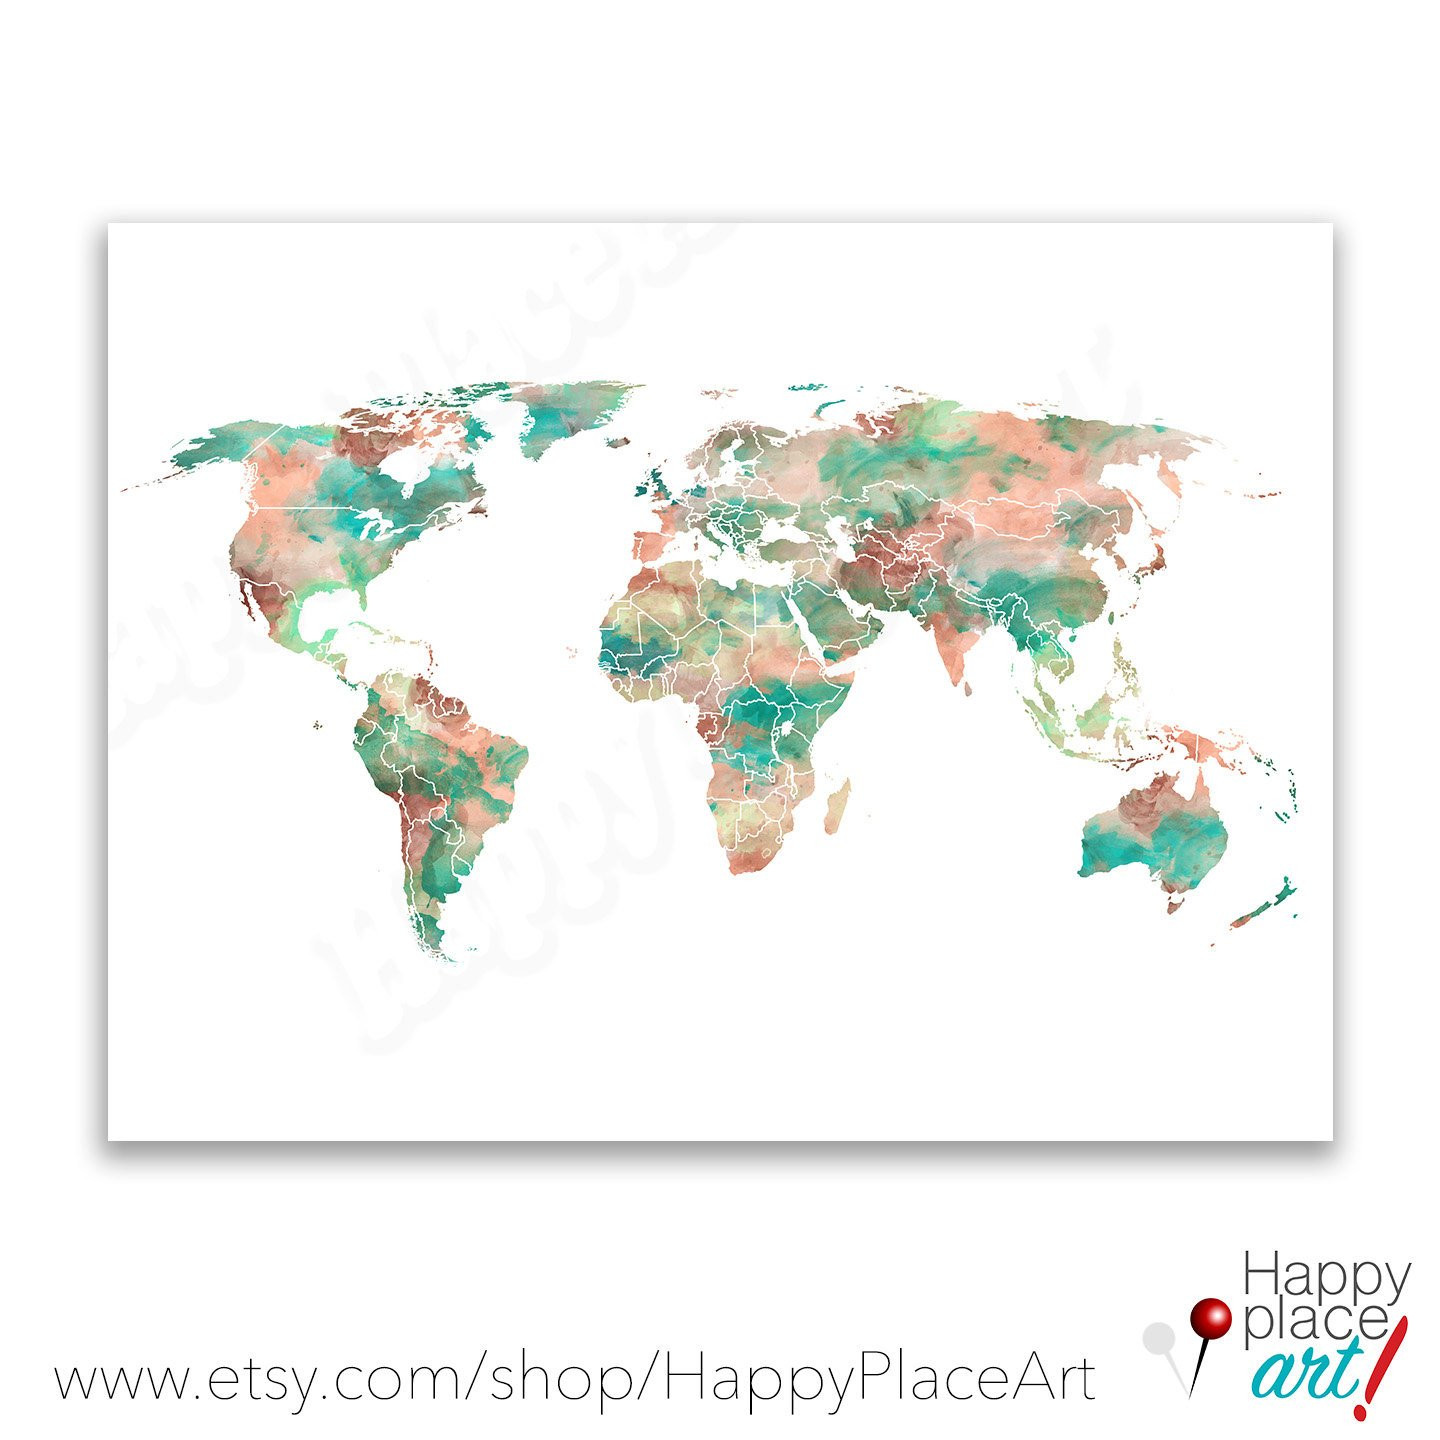 8x10 Printable Map Beautiful Mint Green Lime And Peach World Map Print 8x10 11x14 Or